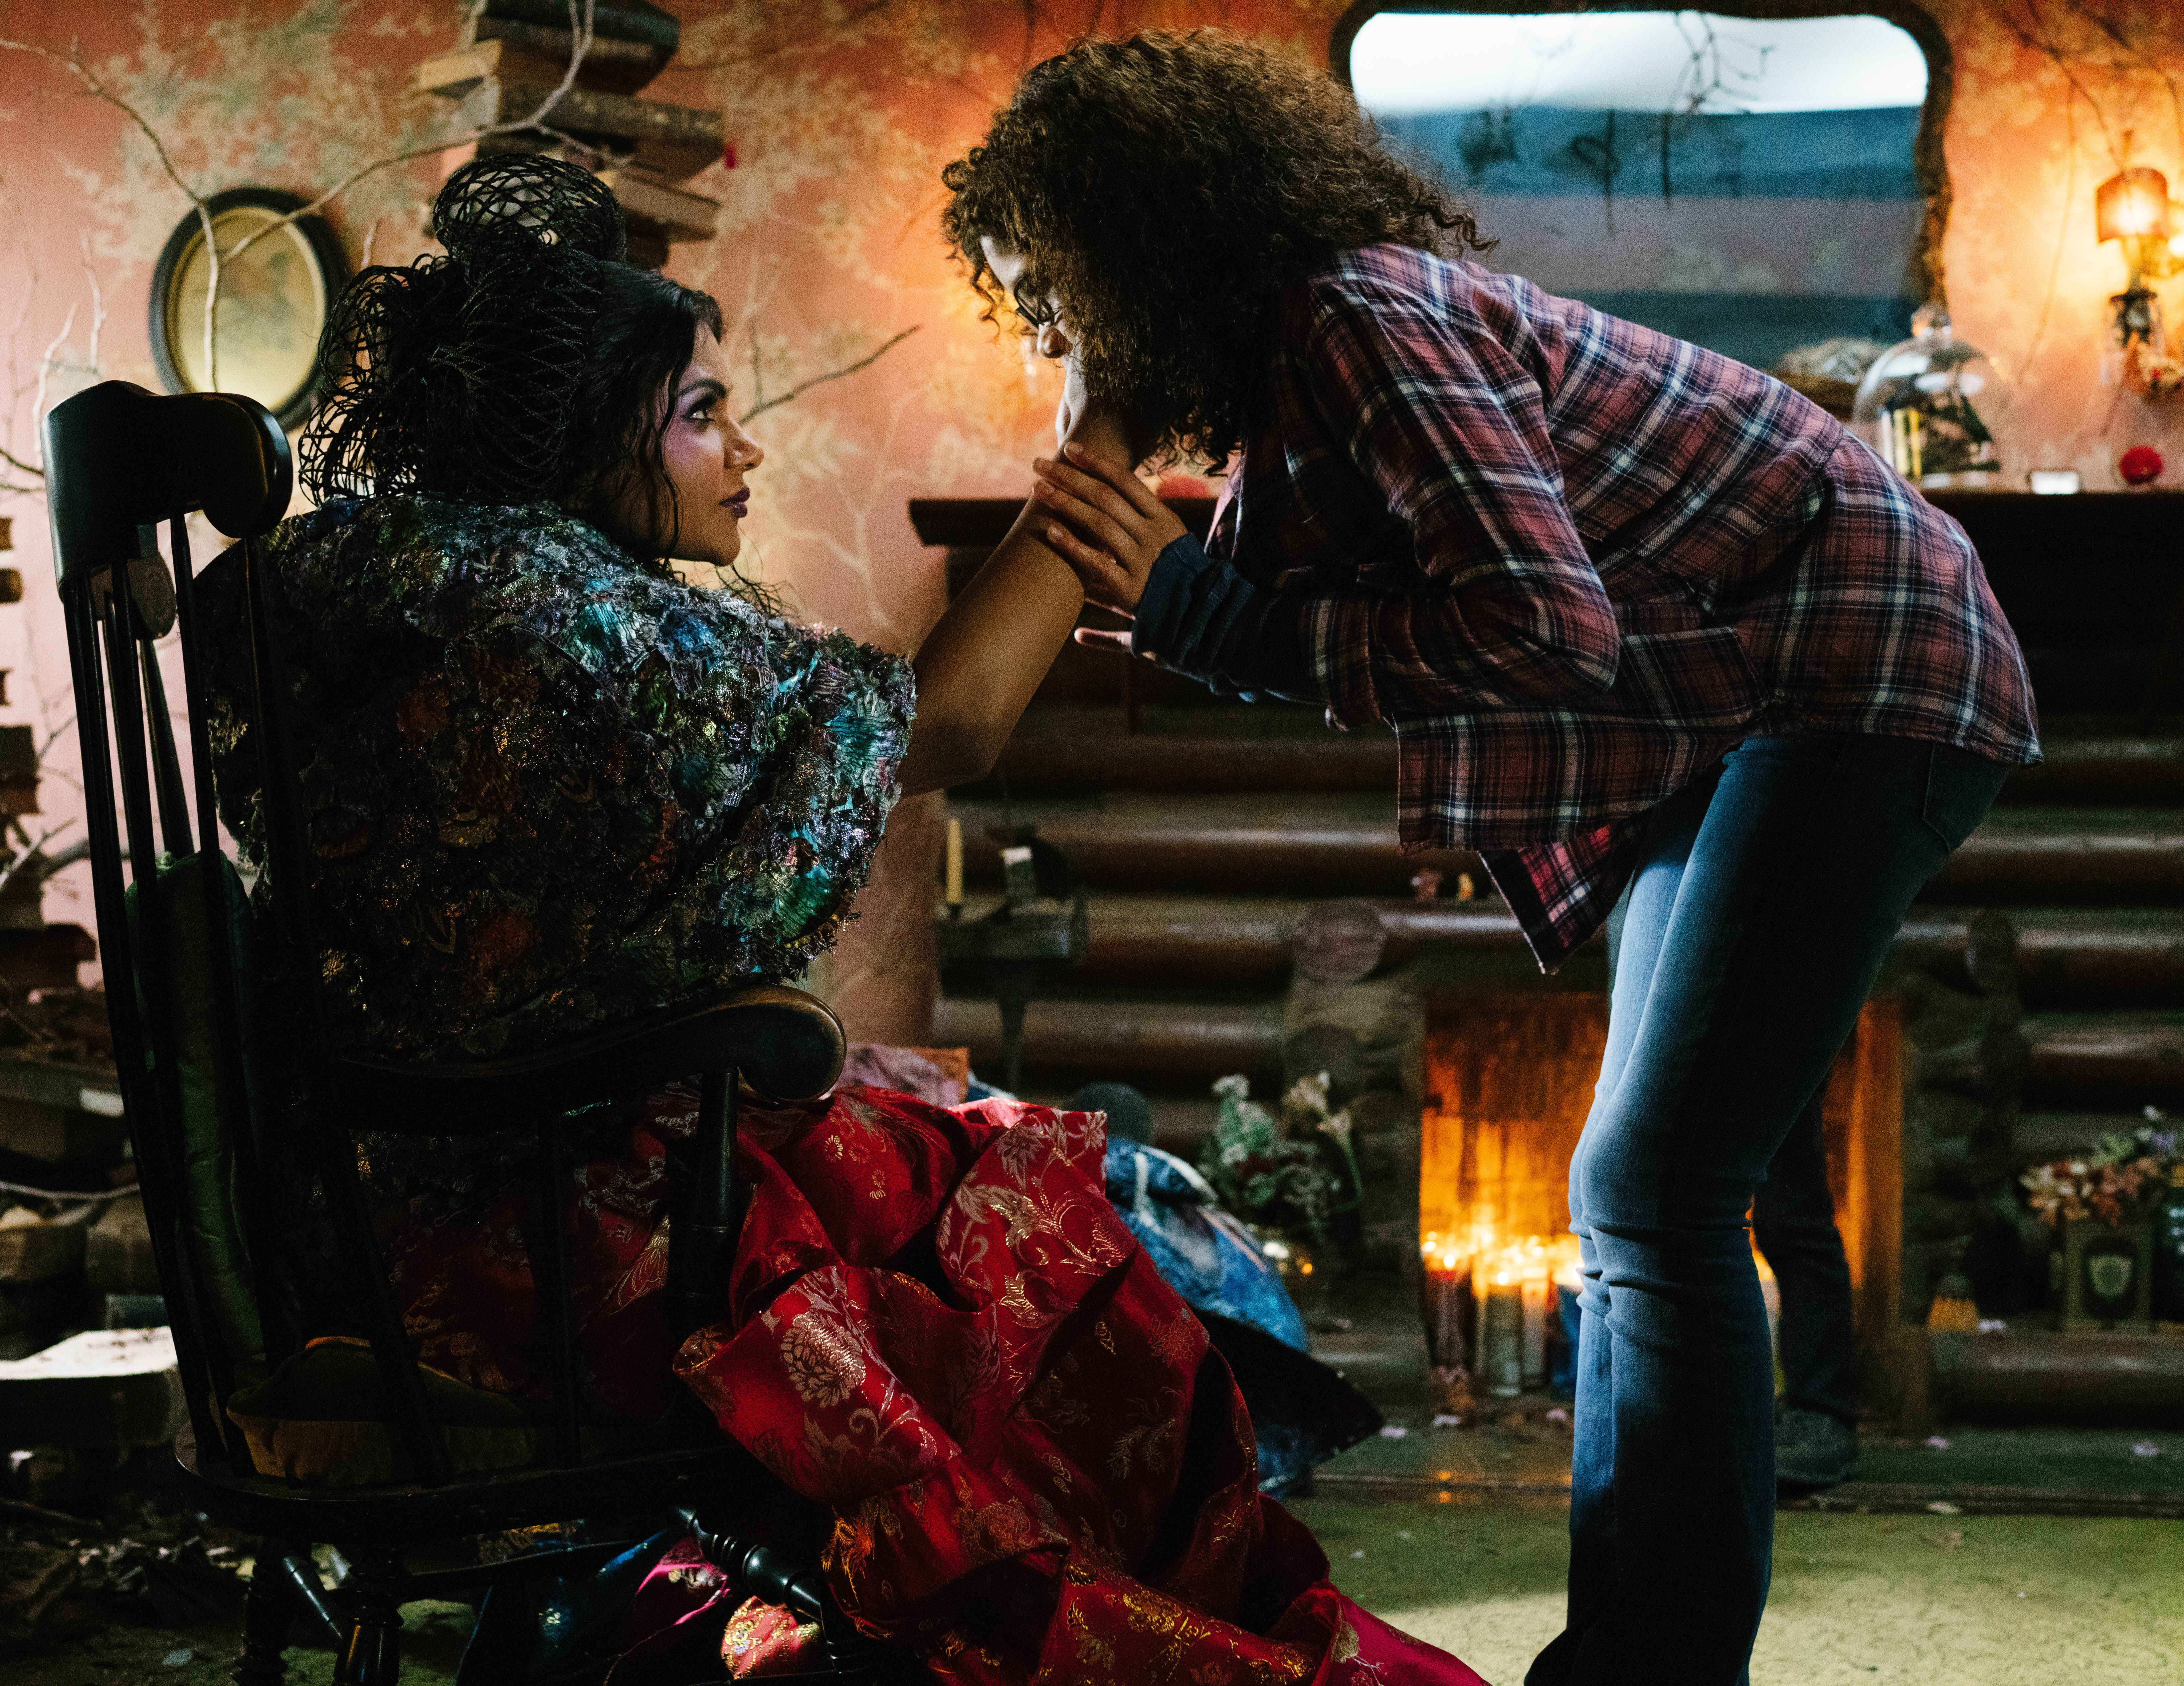 Mindy Kaling is Mrs. Who and Storm Reid is Meg Murry in Disney's A WRINKLE IN TIME.